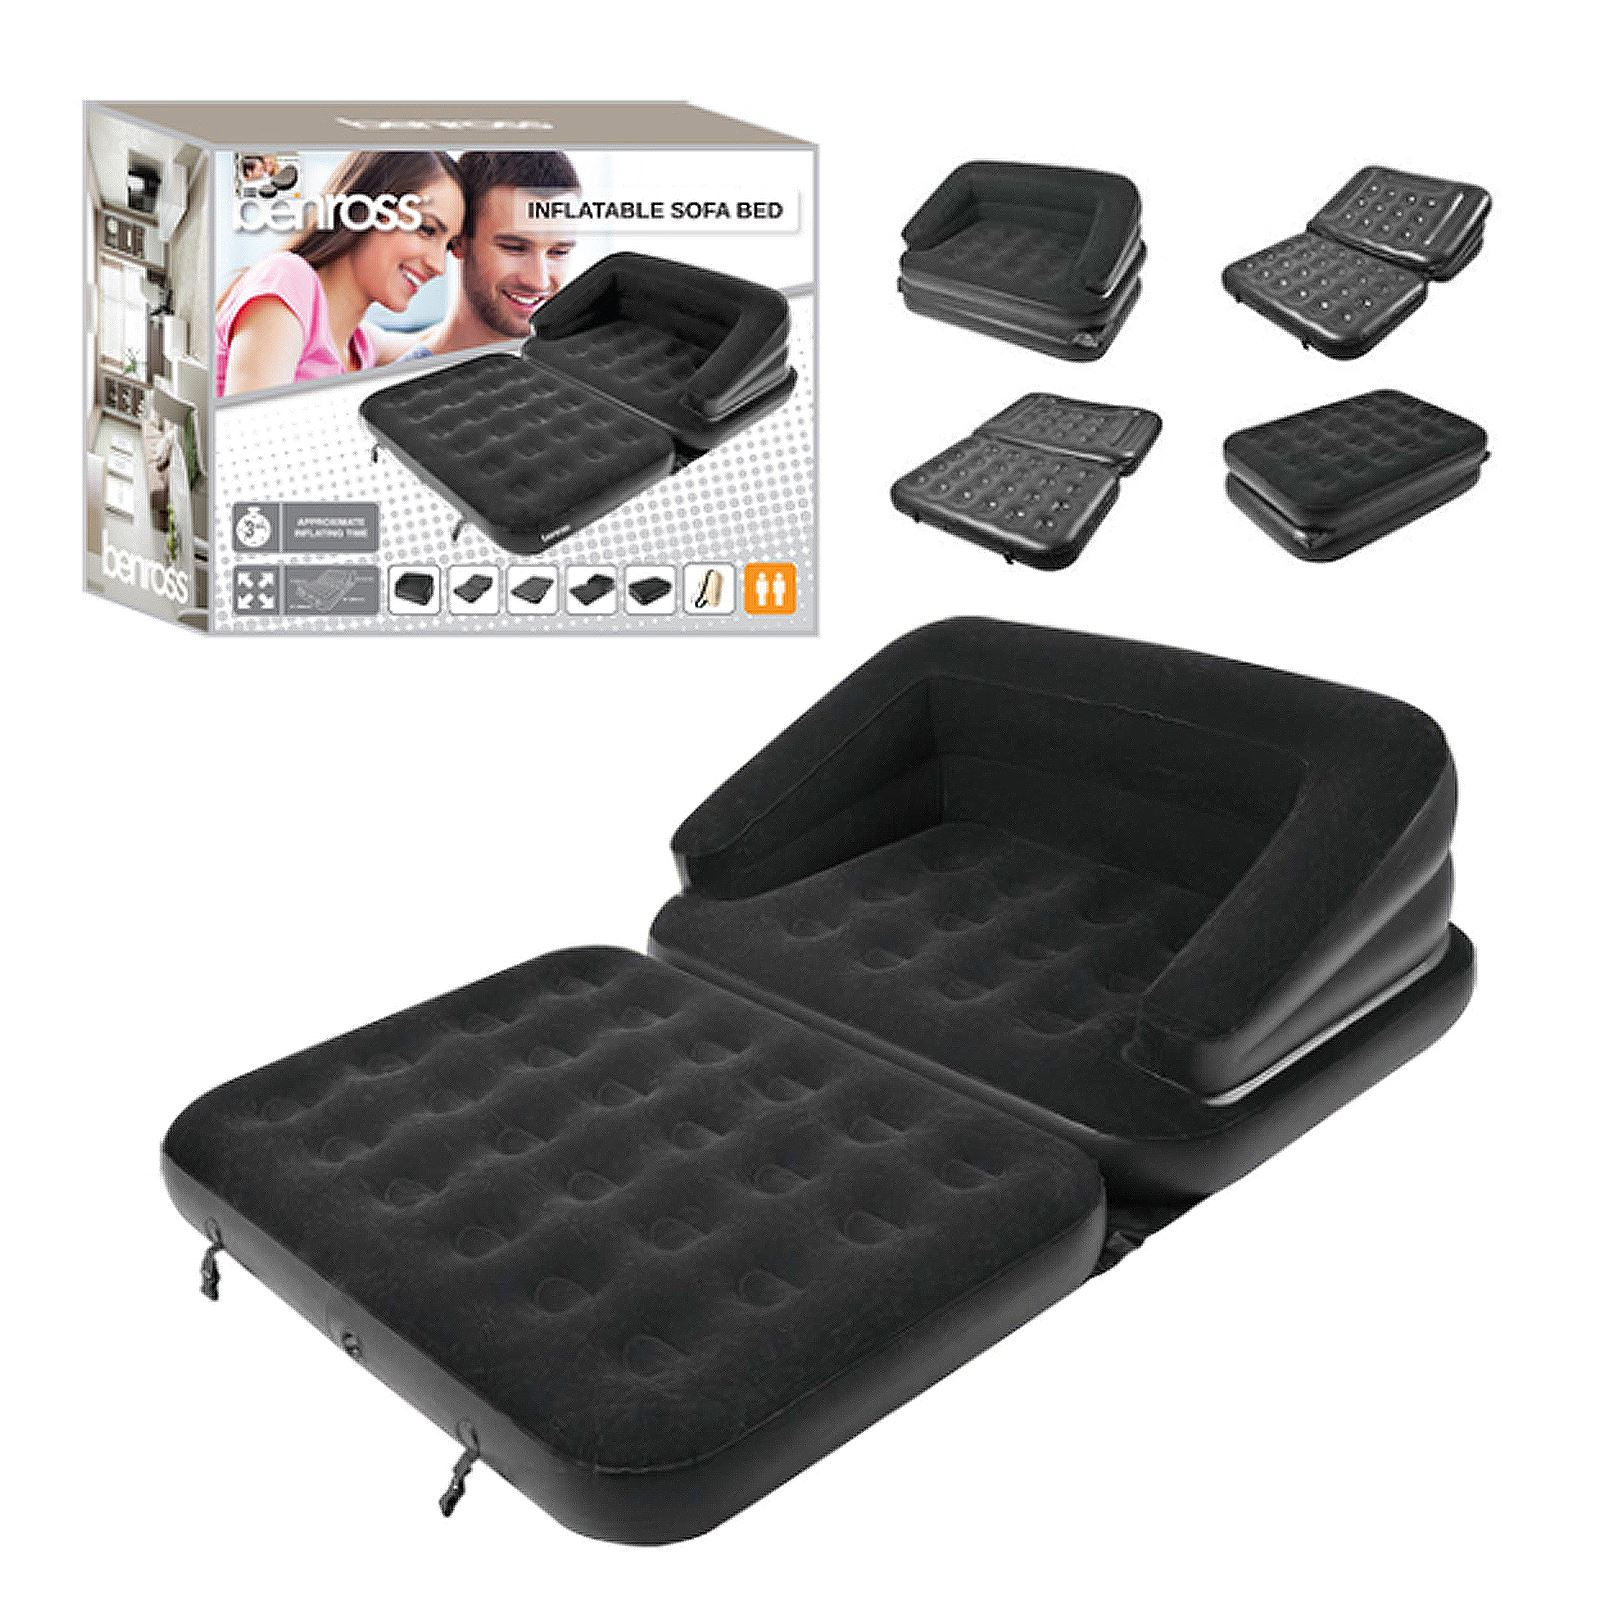 Inflatable Sofa Mattress: 5 In 1 Inflatable Sofa Bed Double Flocked Couch Relaxing